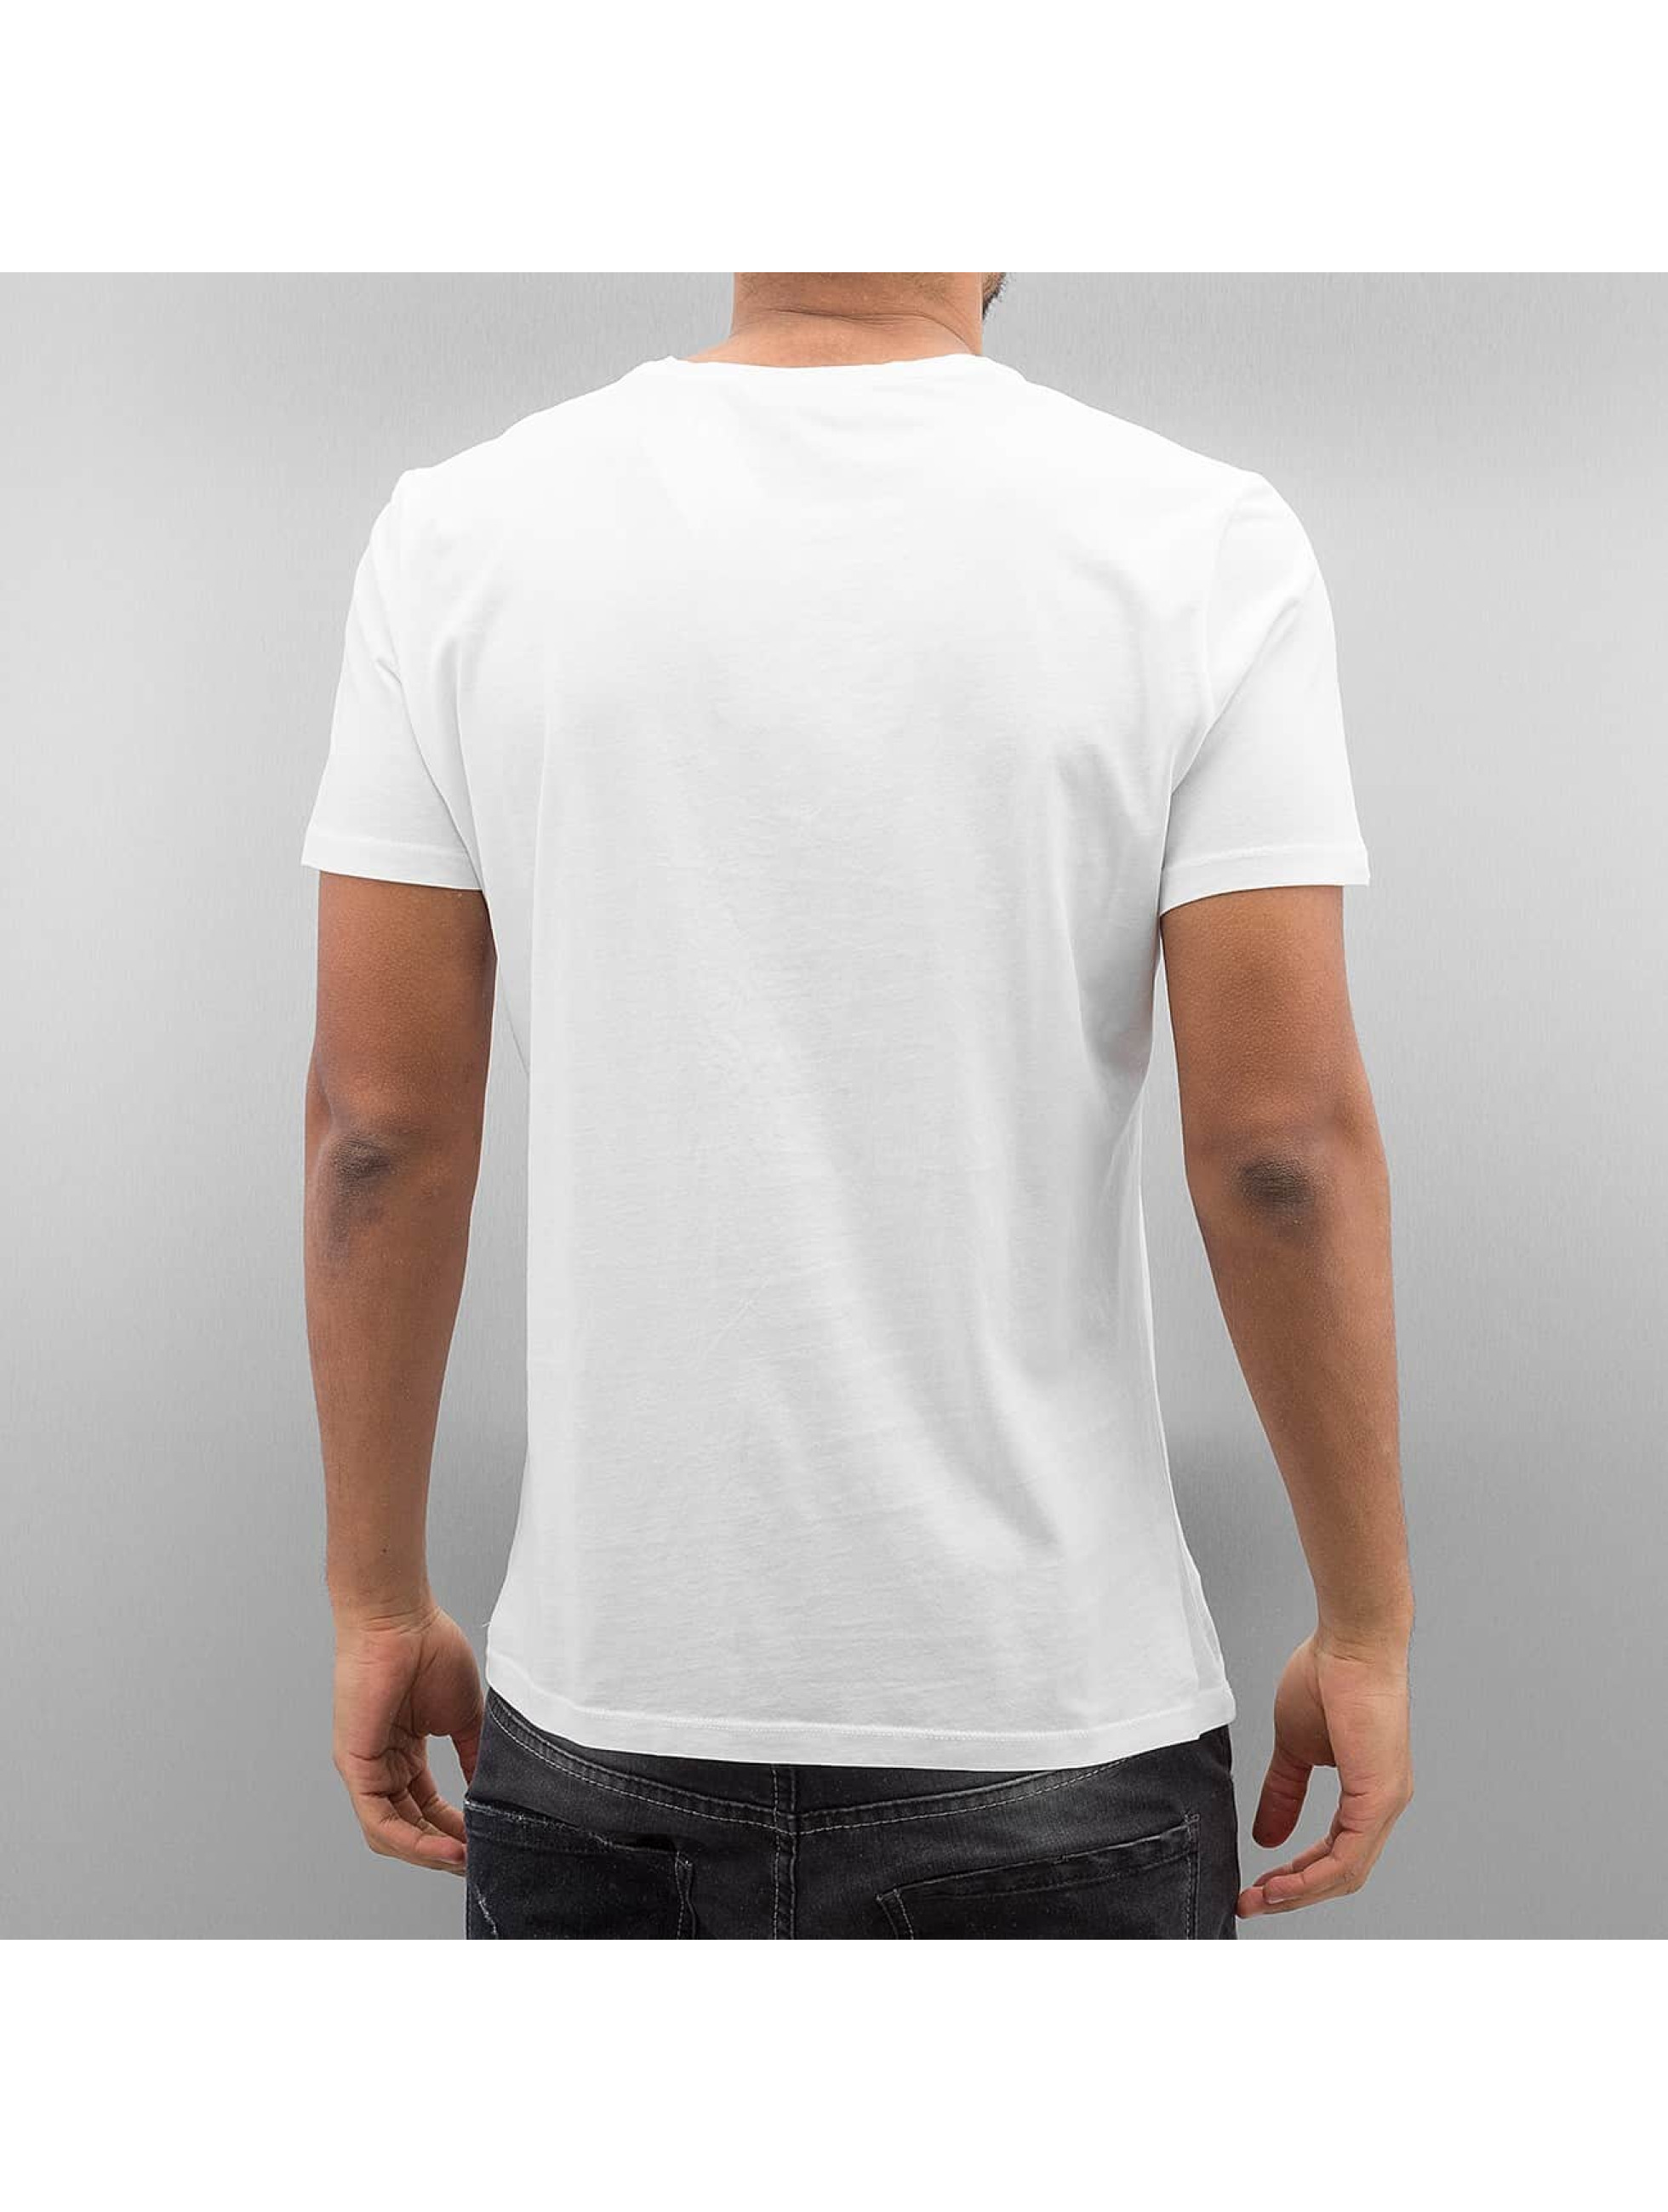 French Kick T-Shirt Yehti white